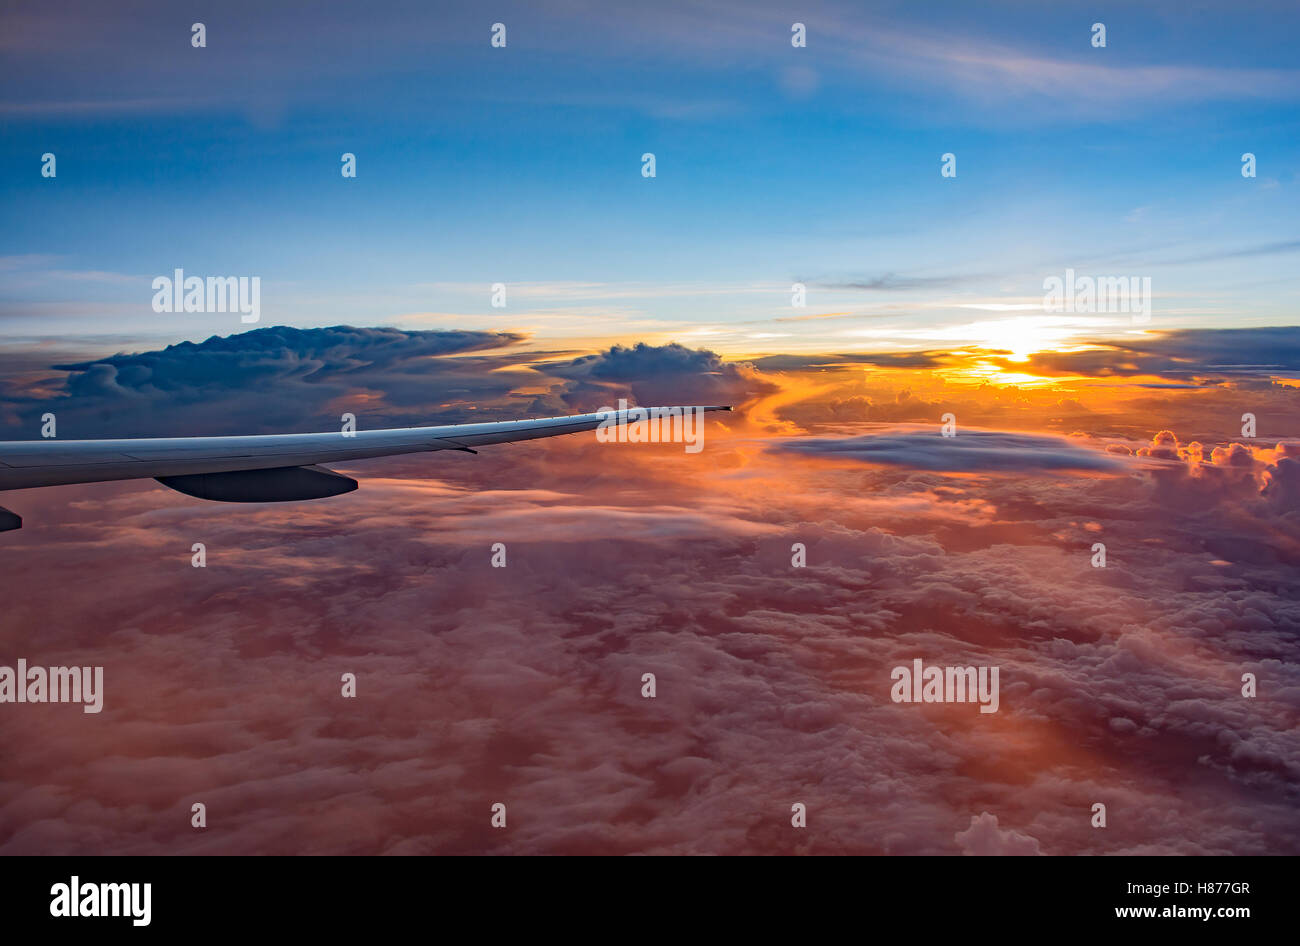 Looking From Window To Air Plane Wing In Flight With Beautiful Scenery Of Amazing Cloud Formations On Sunset Sky